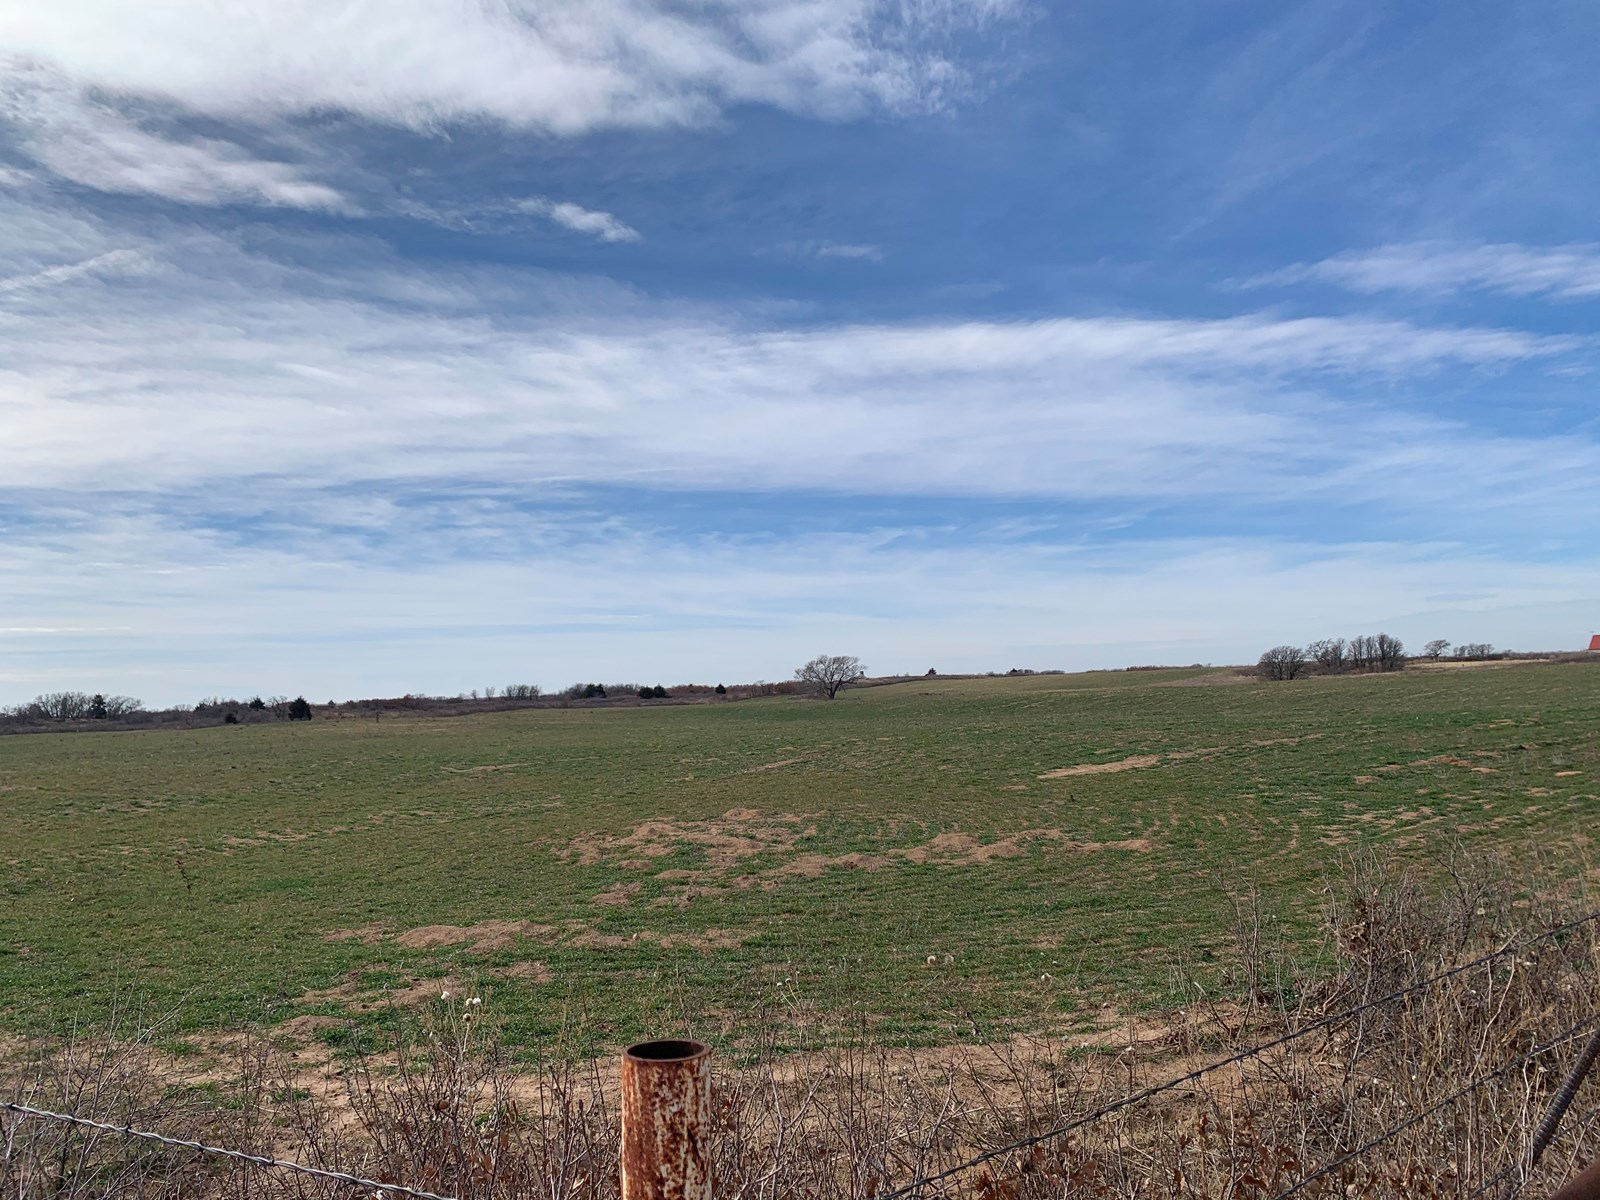 LAND FOR SALE IN SAYRE, OK